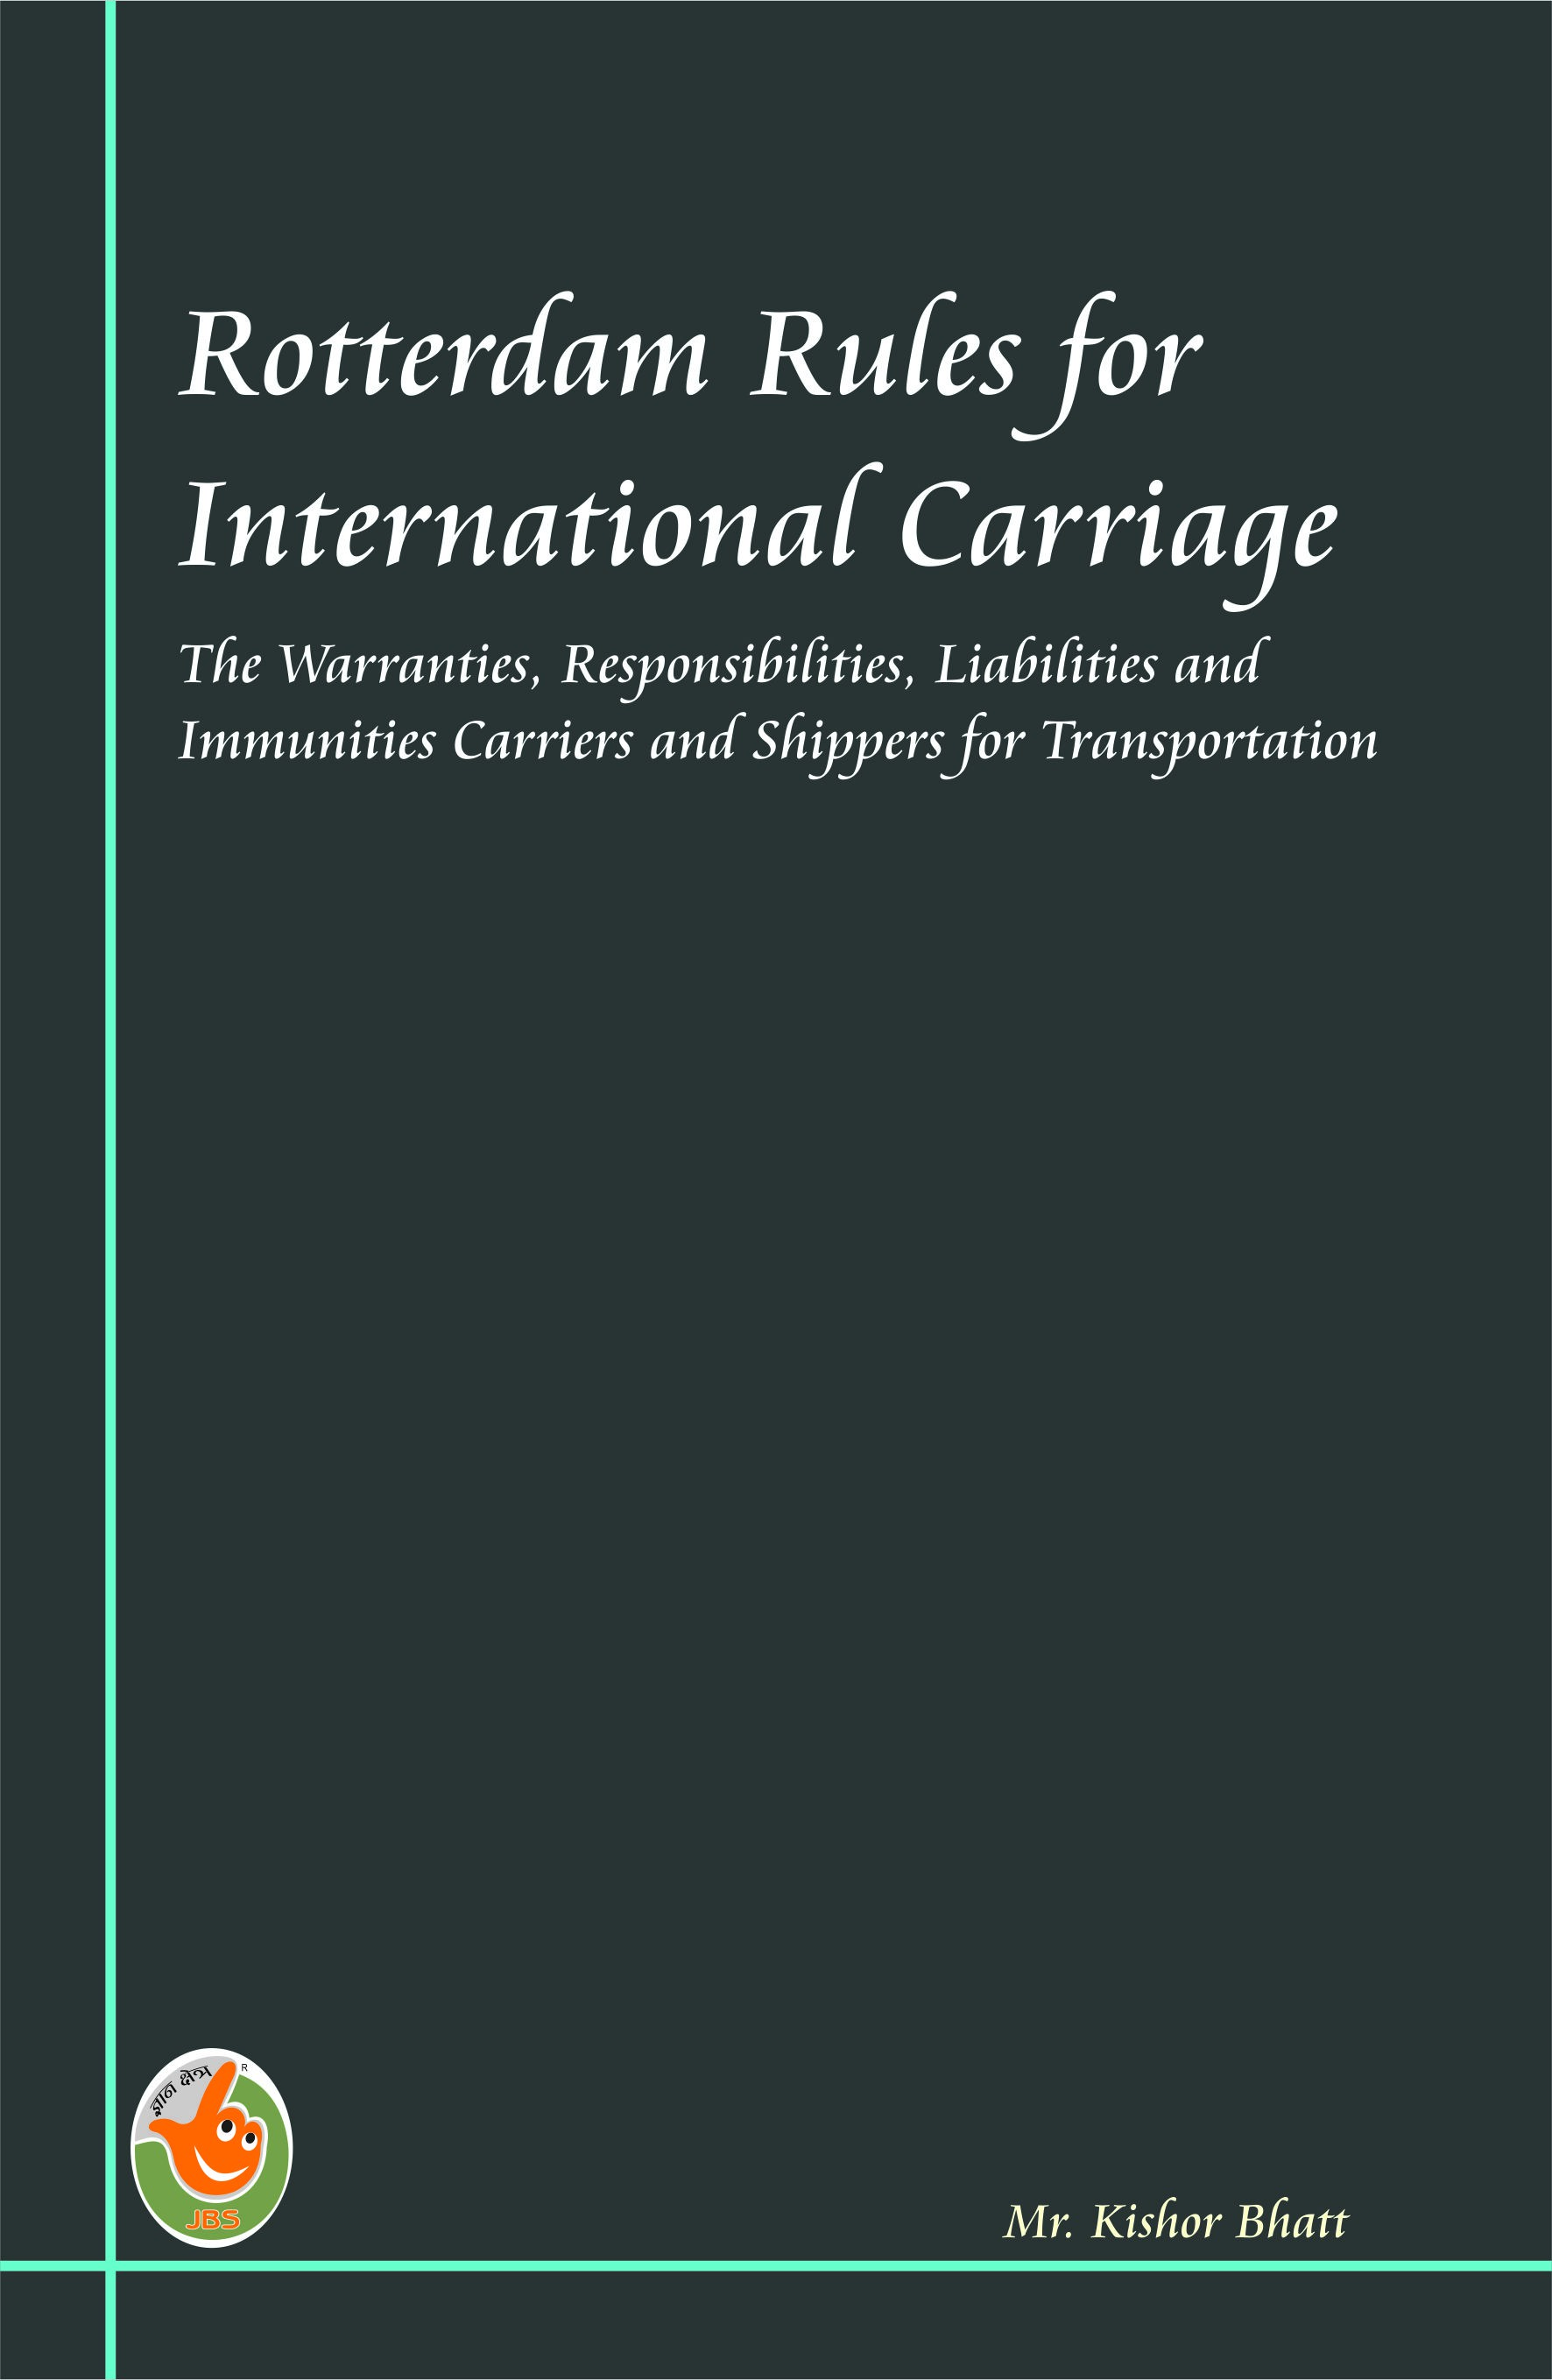 Rotterdam Rules for International Carriage